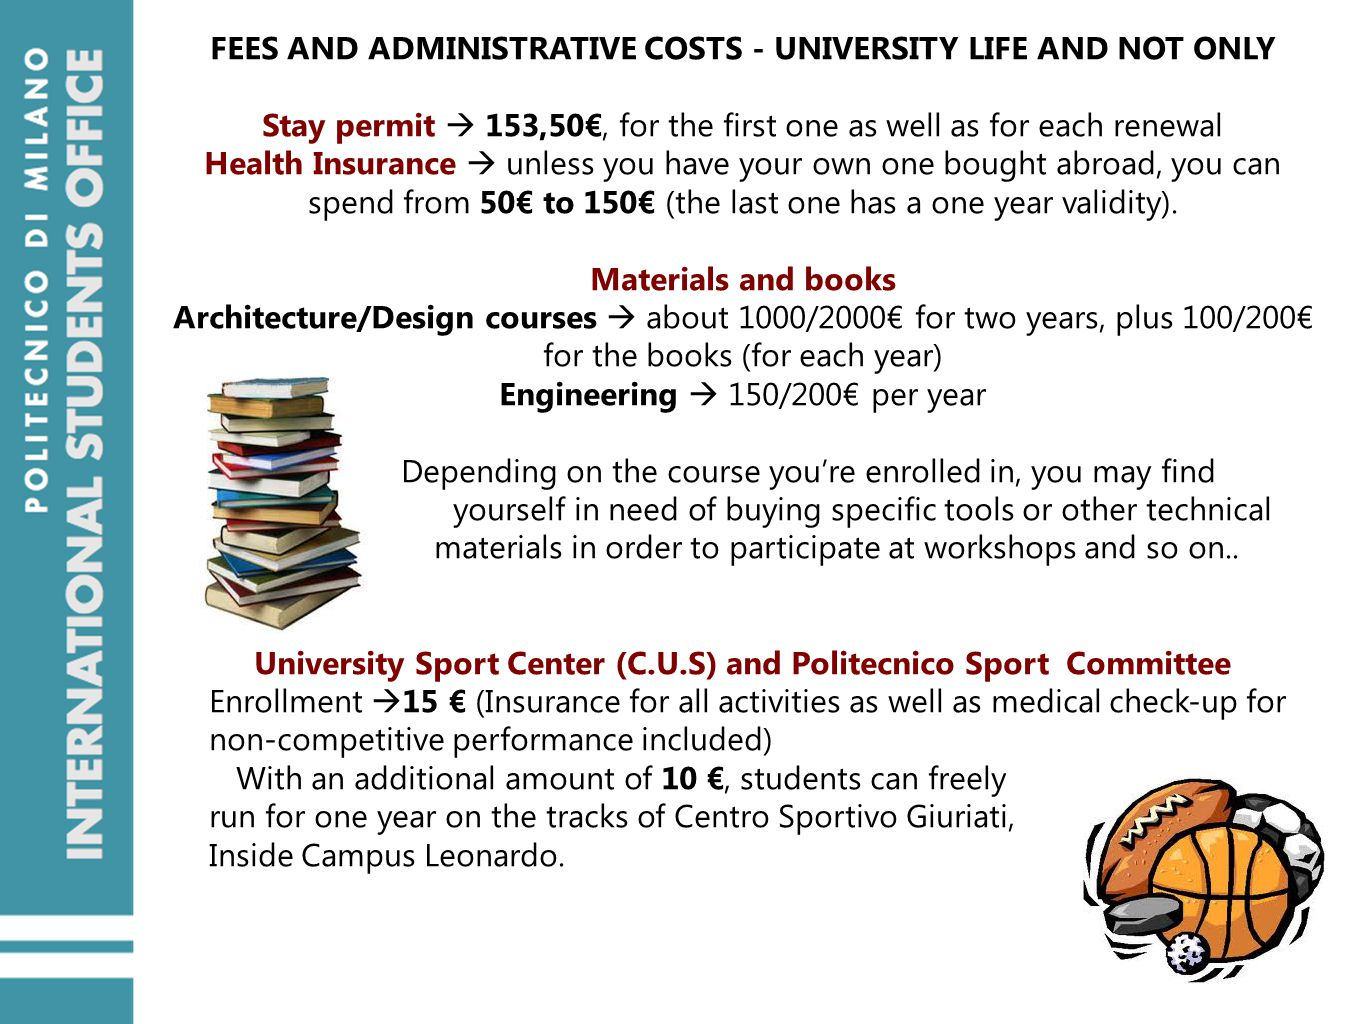 FEES AND ADMINISTRATIVE COSTS - UNIVERSITY LIFE AND NOT ONLY Stay permit  153,50€, for the first one as well as for each renewal Health Insurance  unless you have your own one bought abroad, you can spend from 50€ to 150€ (the last one has a one year validity).